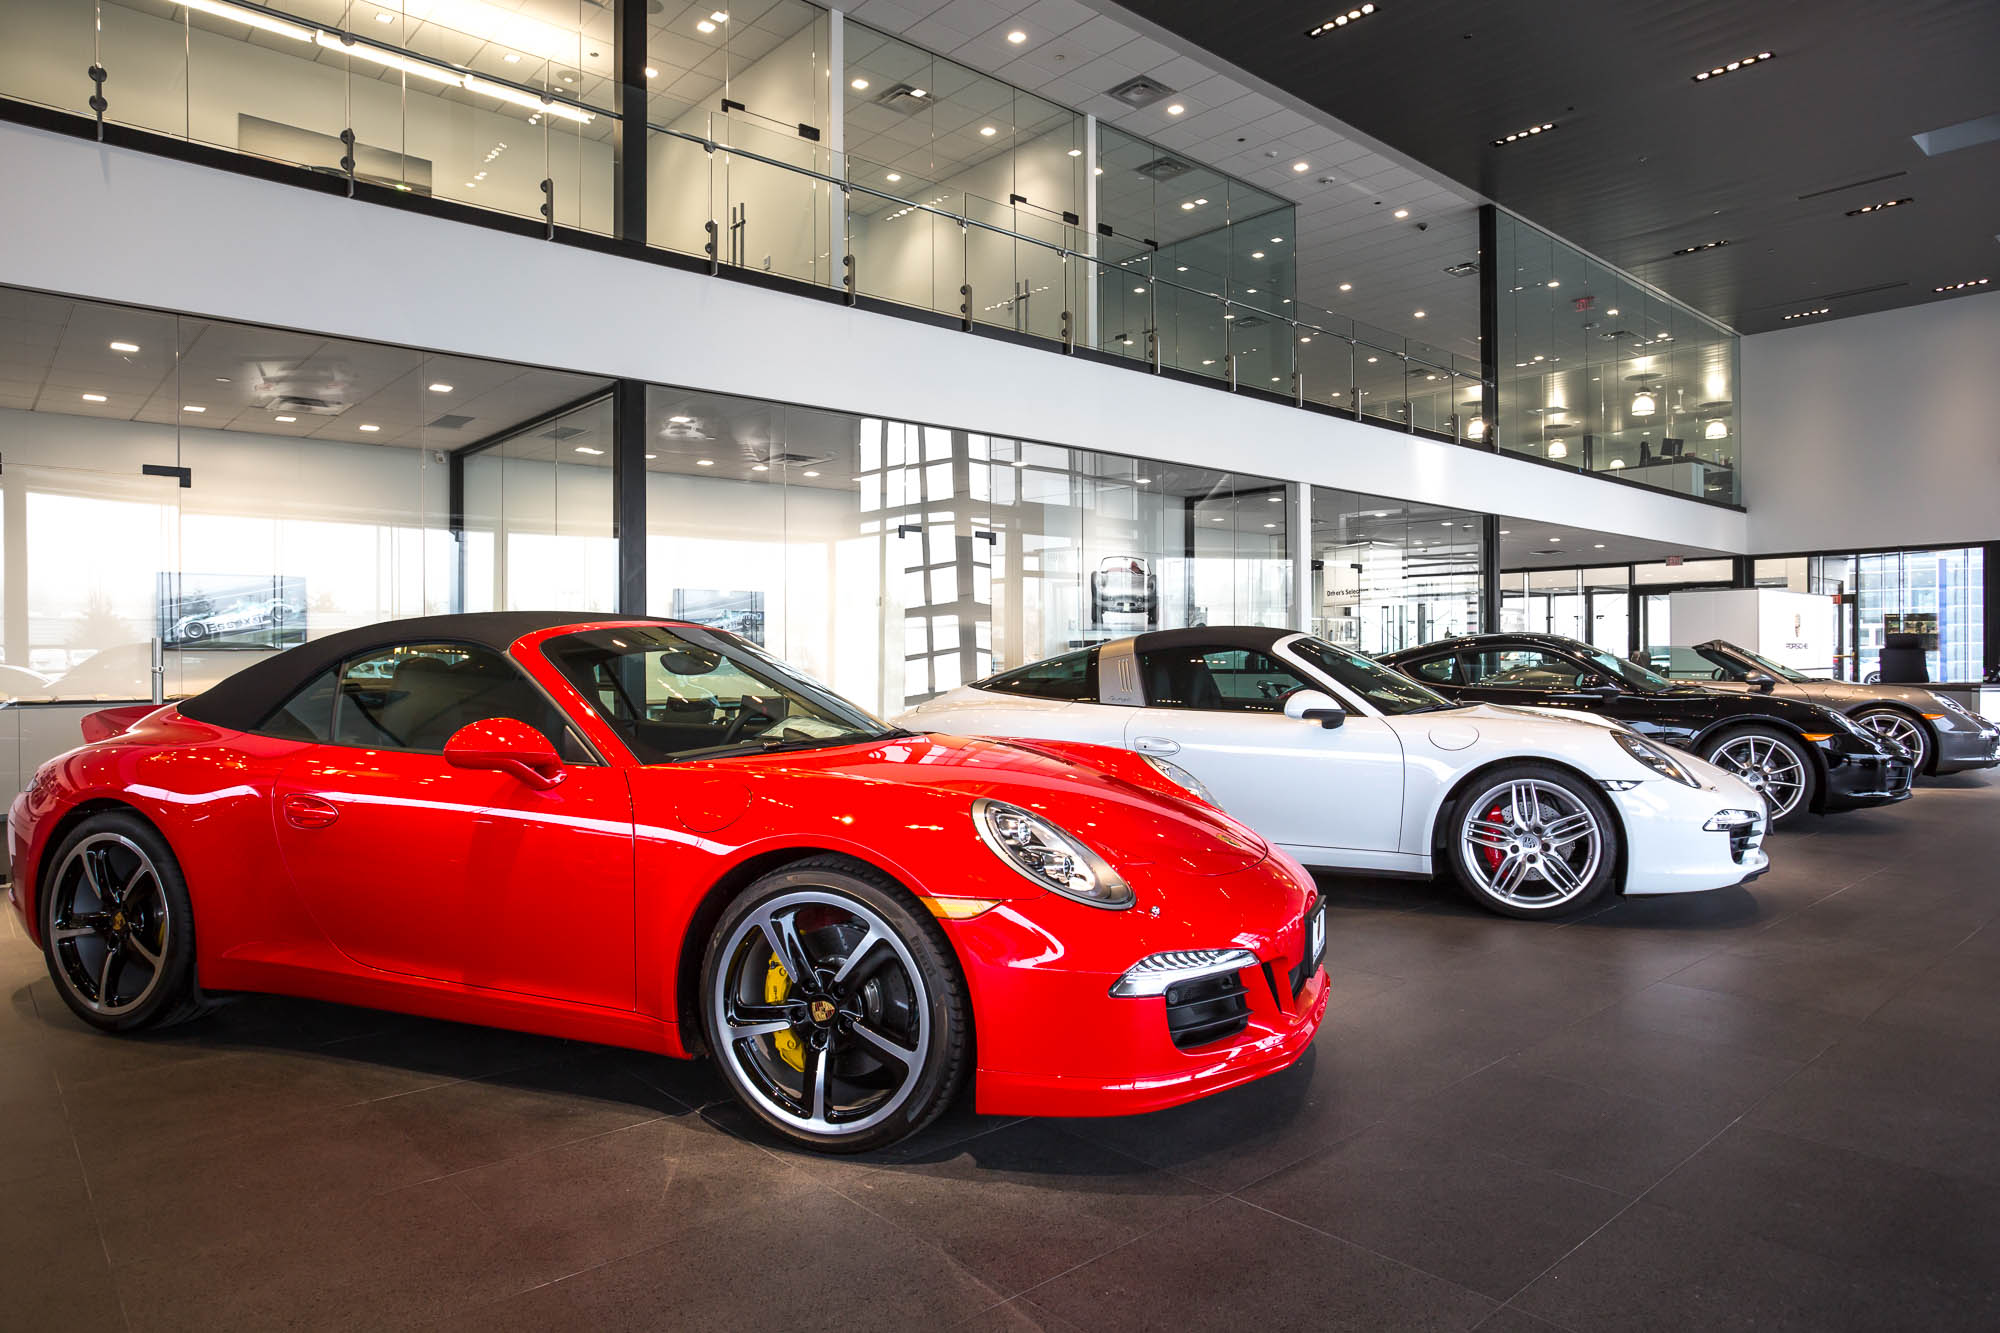 Porsche Car Dealership Seattle Architectural Photography